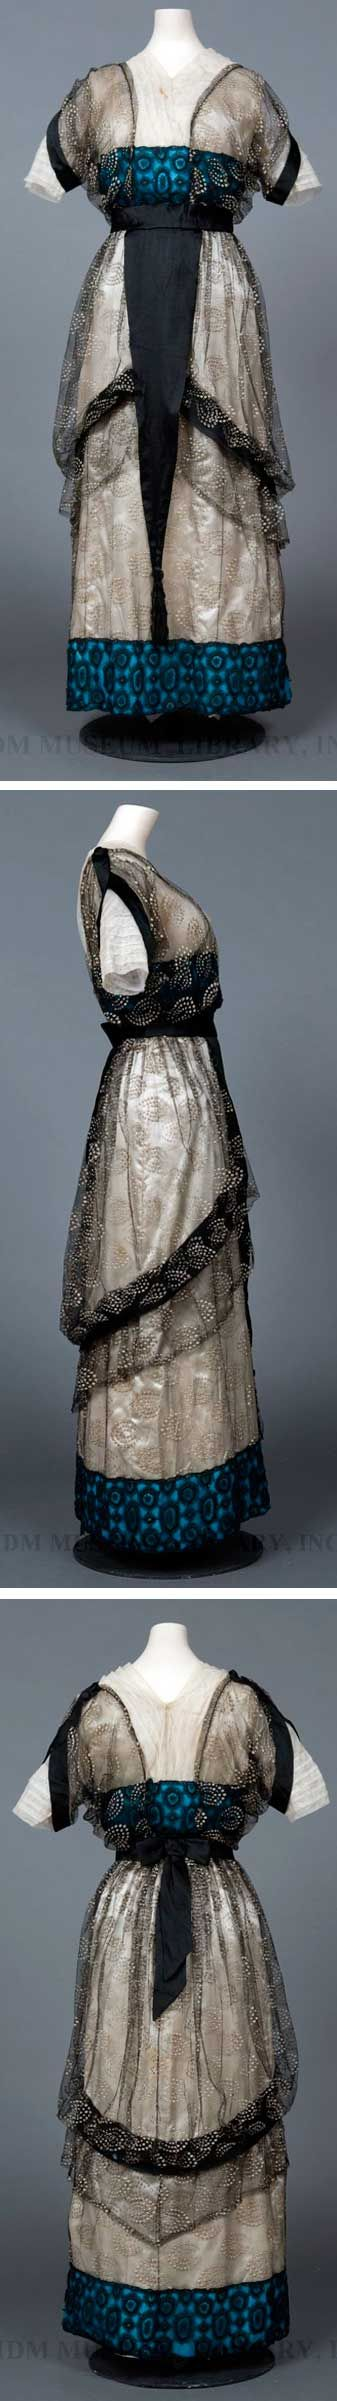 Evening dress, ca. 1912, in the style of Paul Poiret. Draped surplice bodice with V-shaped yoke and elbow-length sleeves. Black chiffon tunic over cream-colored silk, both with white polka dots in concentric circles. Skirt is banded by turquoise chiffon with an overlay of black lace. Dress hits at instep, which was considered more youthful than the traditional floor length. It needed matching slippers. FIDM